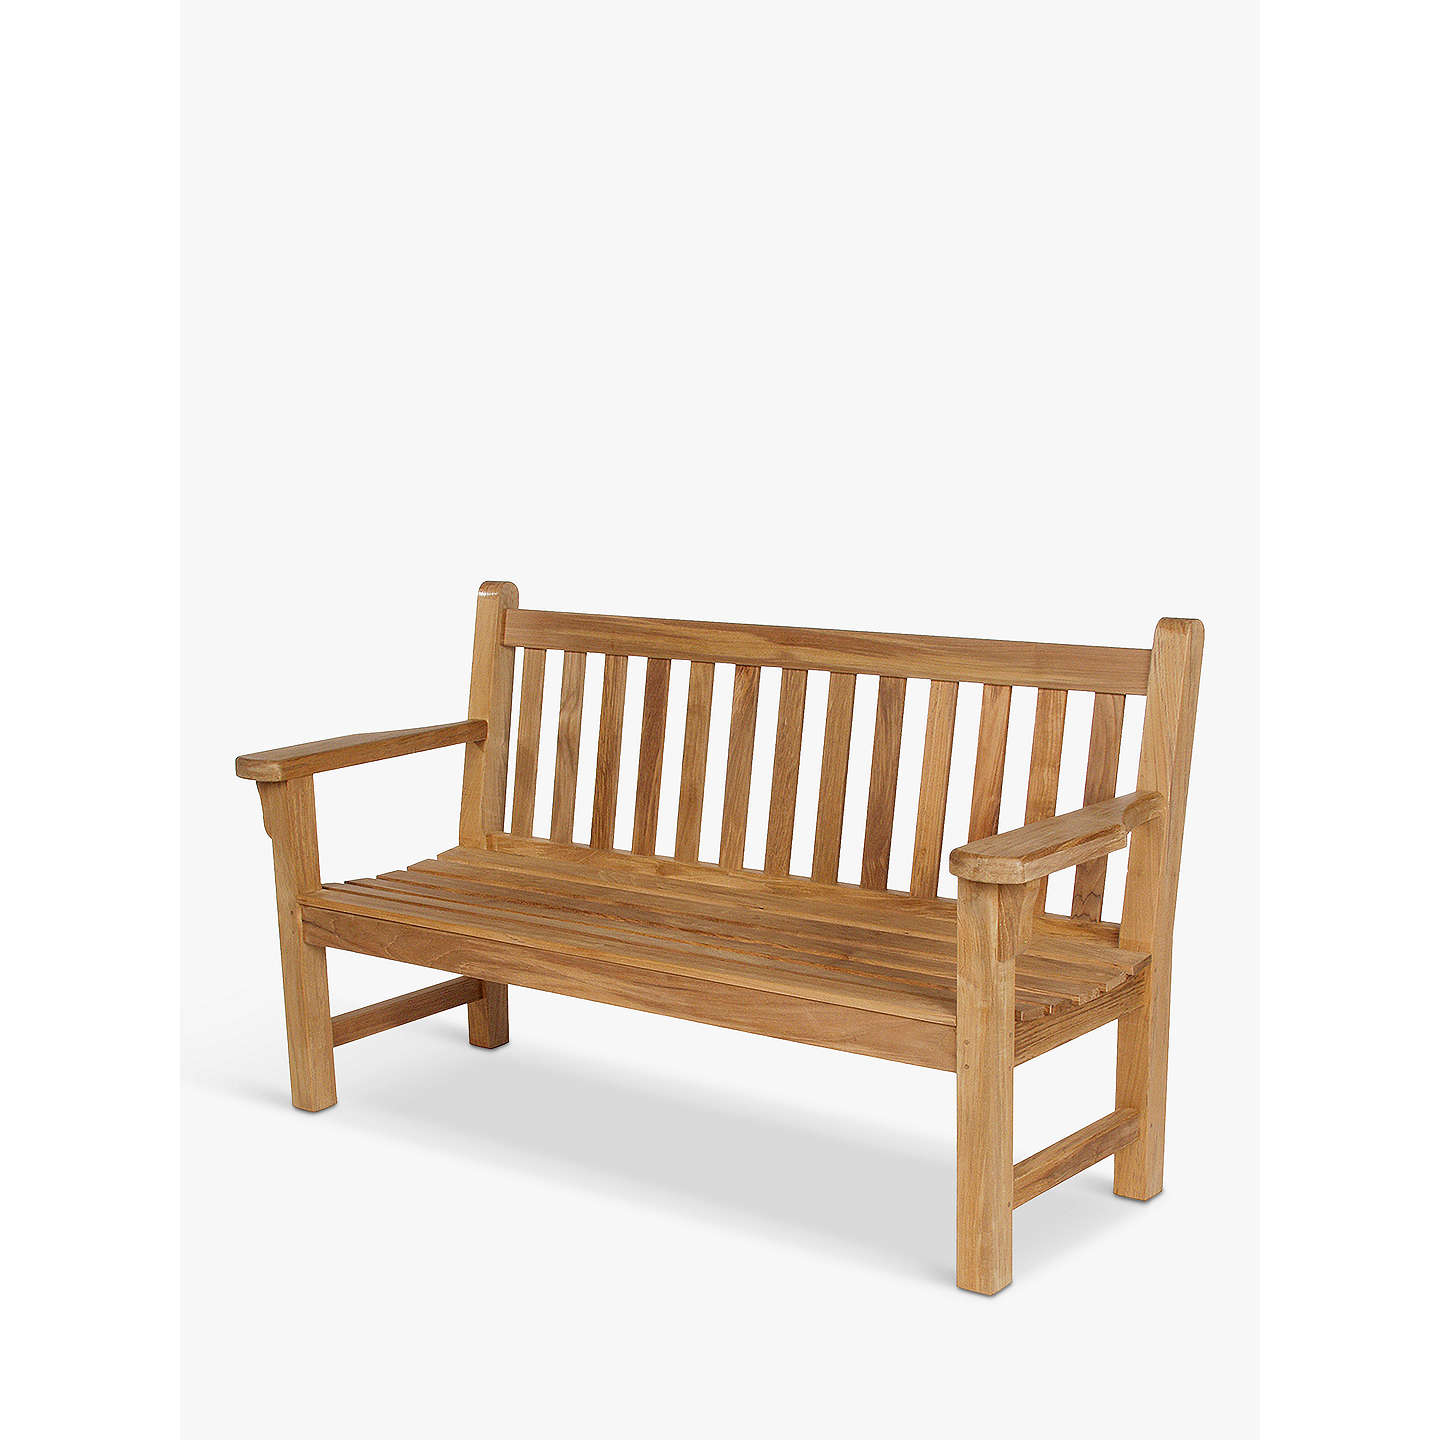 wood picnic outdoor home patio itm sentinel westwood garden fir seater bench white